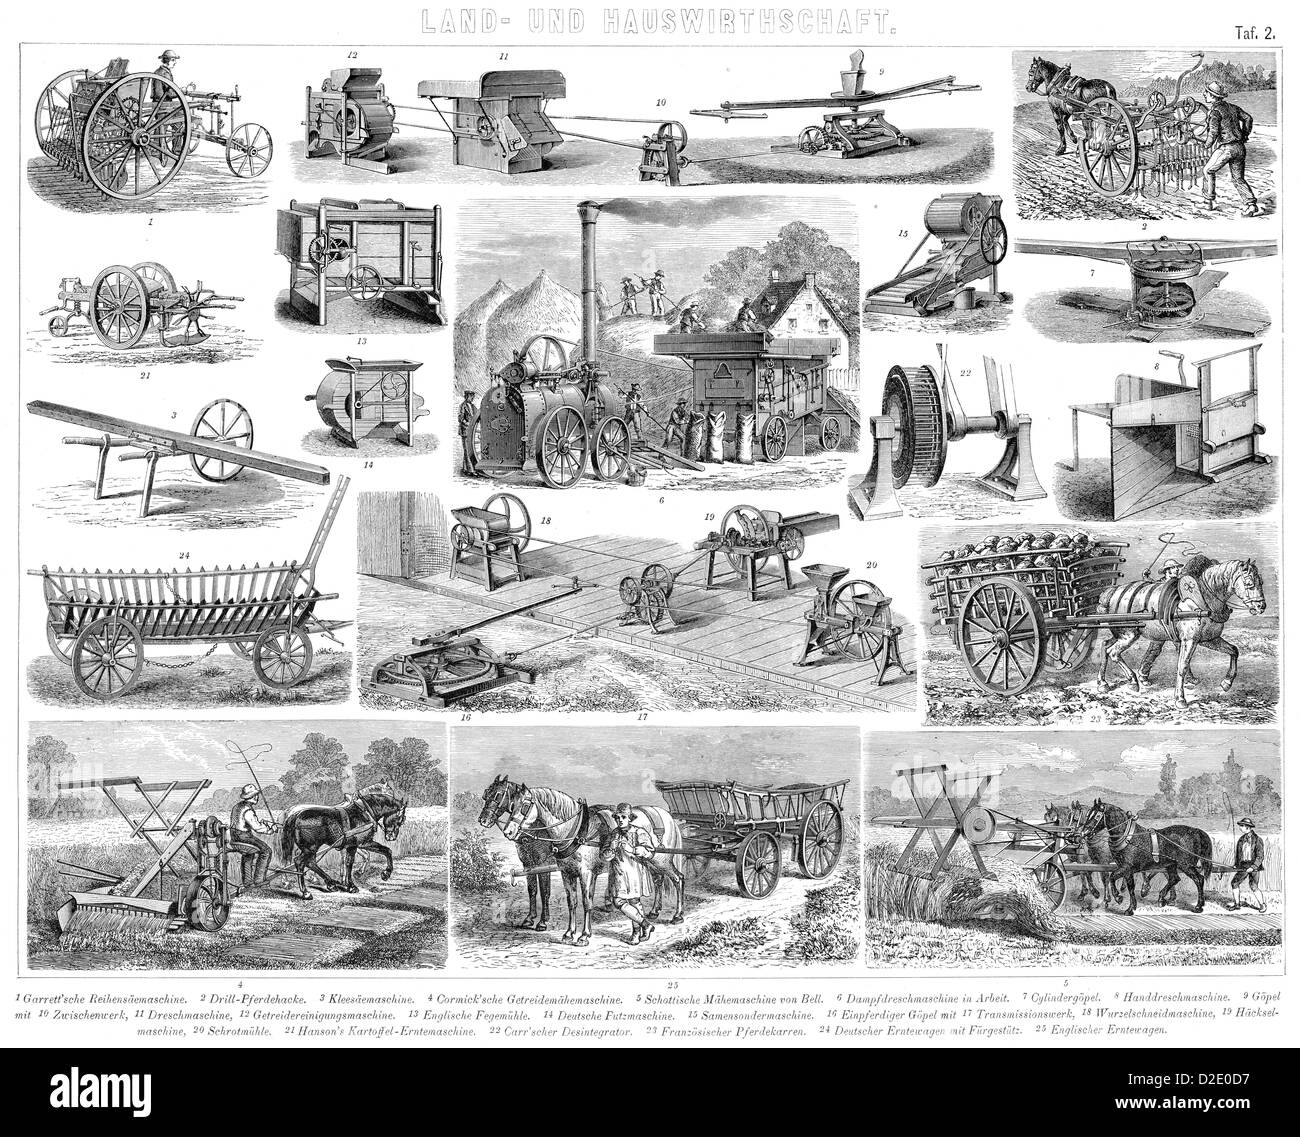 Agricultural Machinery Black And White Stock Photos Images Alamy Taft Tractor Wiring Diagram Vintage Farming Equipment From The 19th Century Image